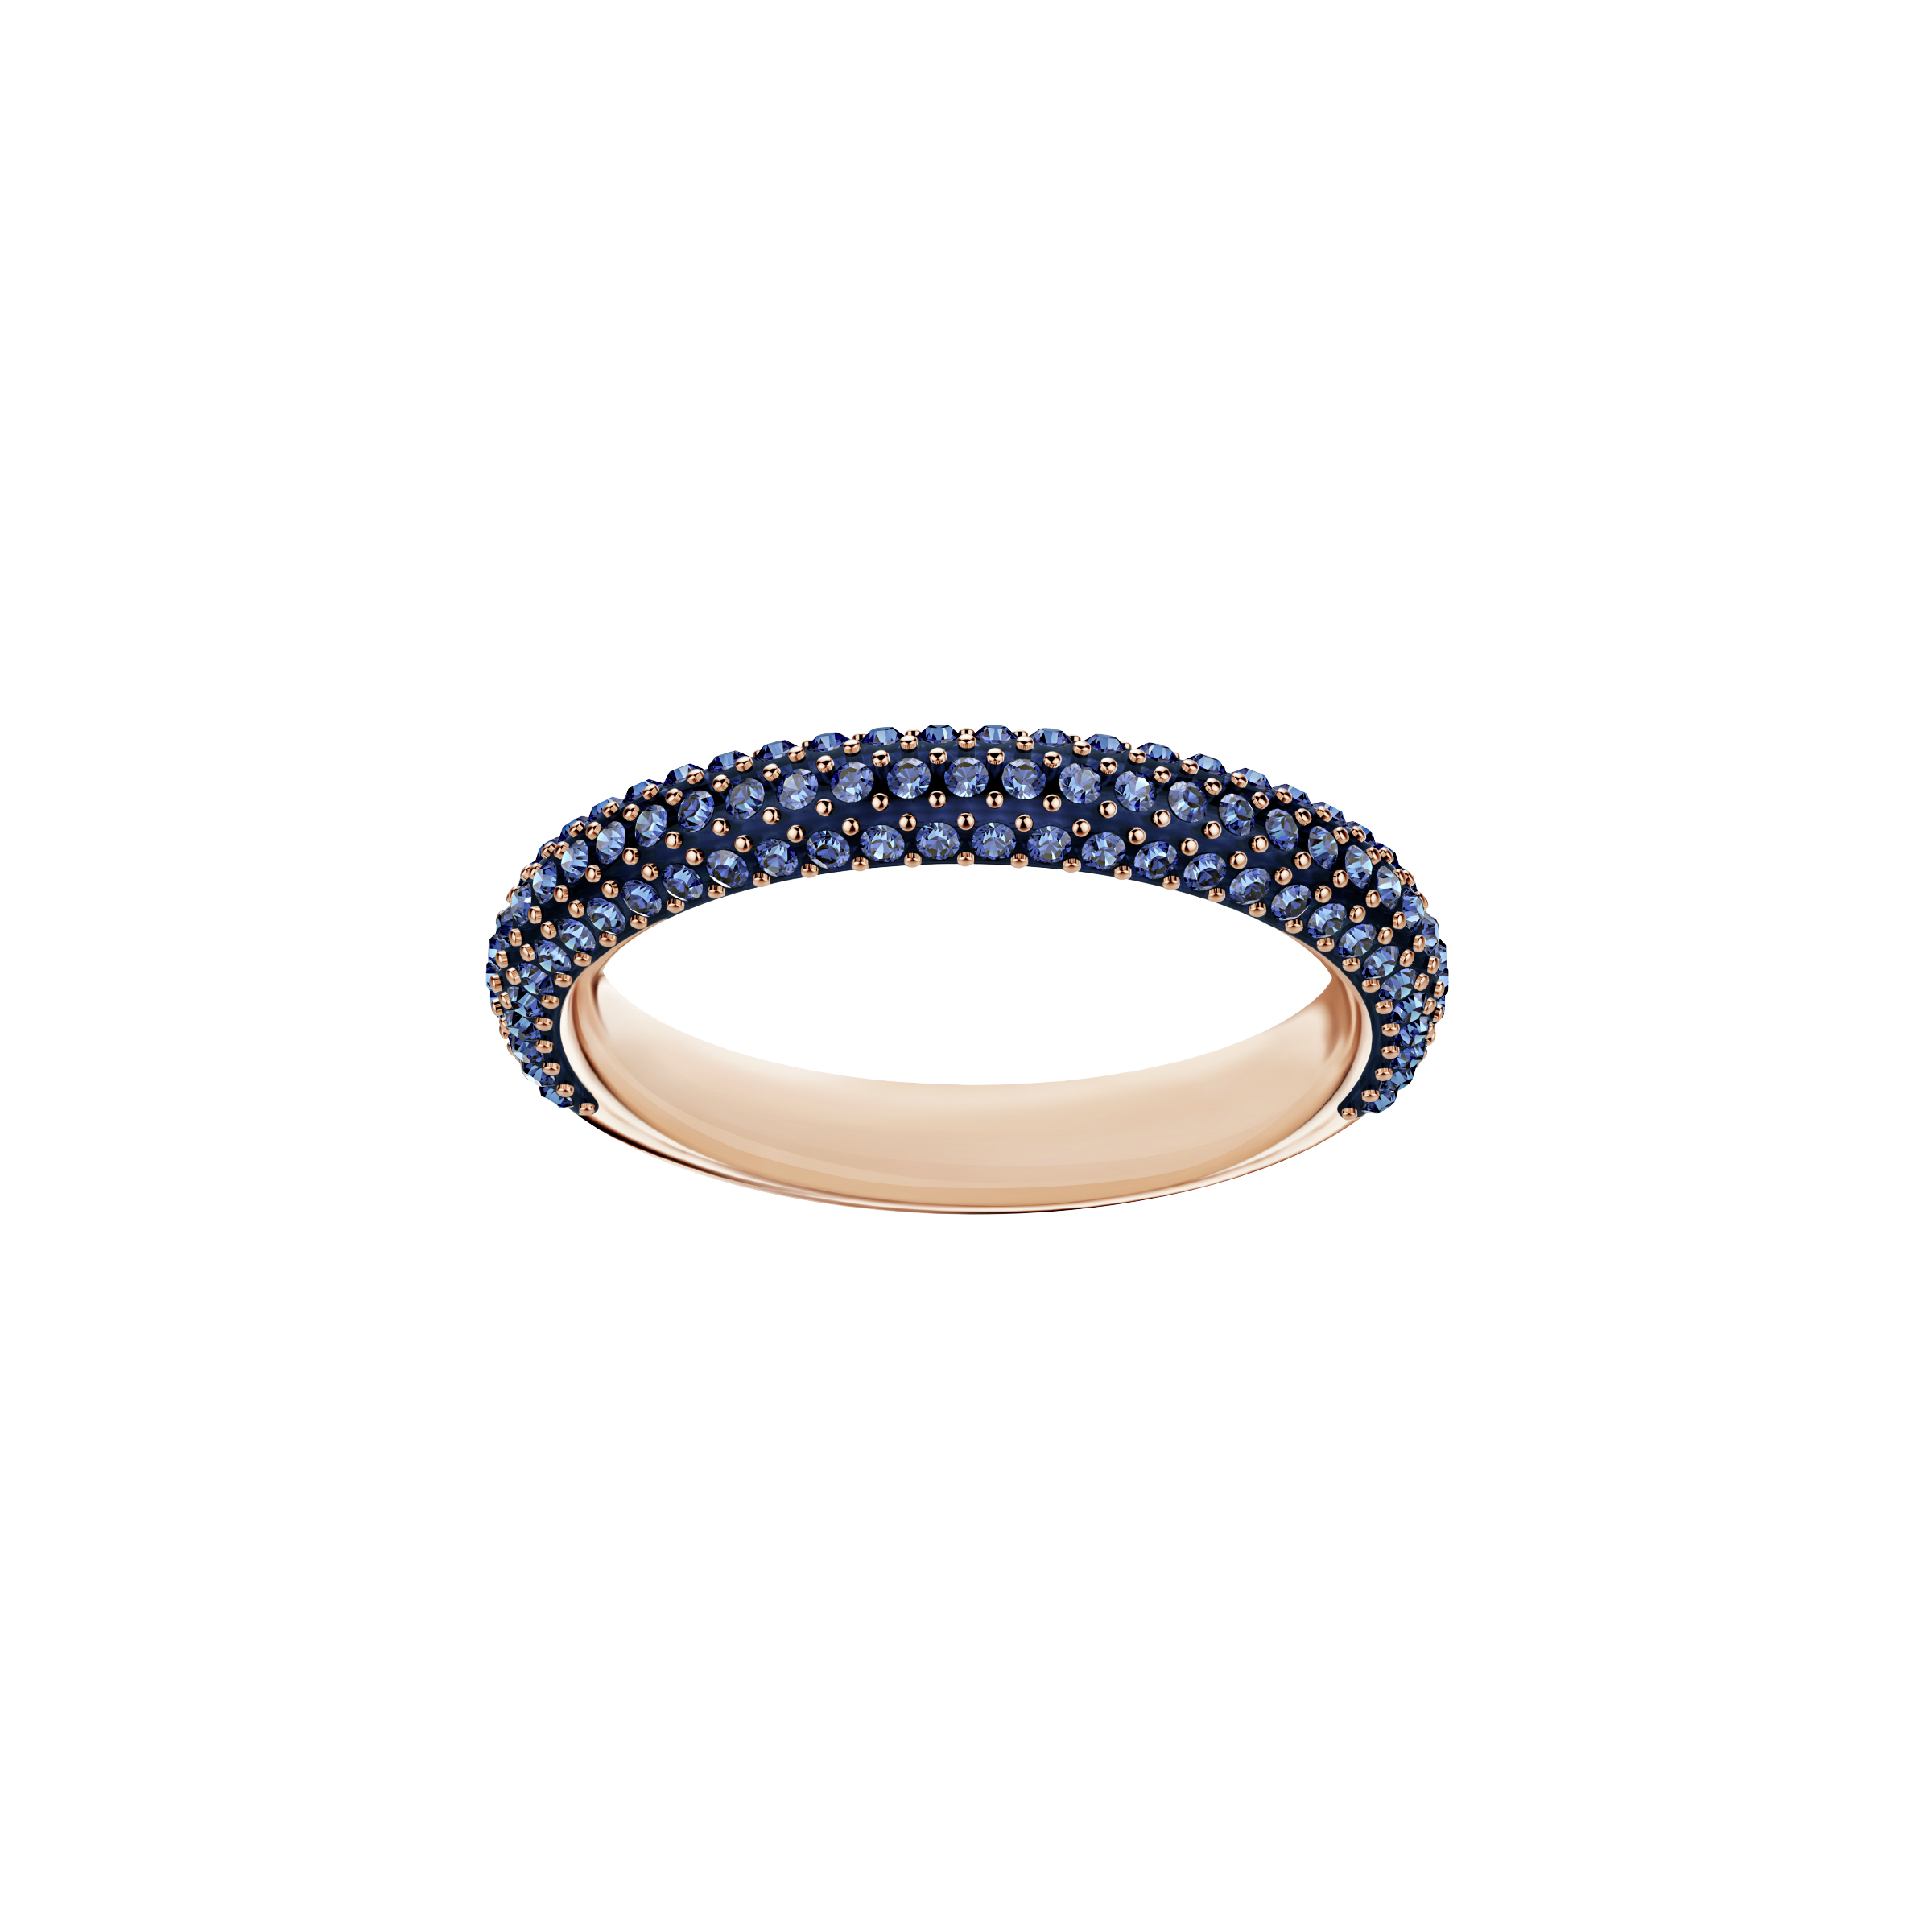 Stone Mini Ring, Blue, Rose Gold Plating